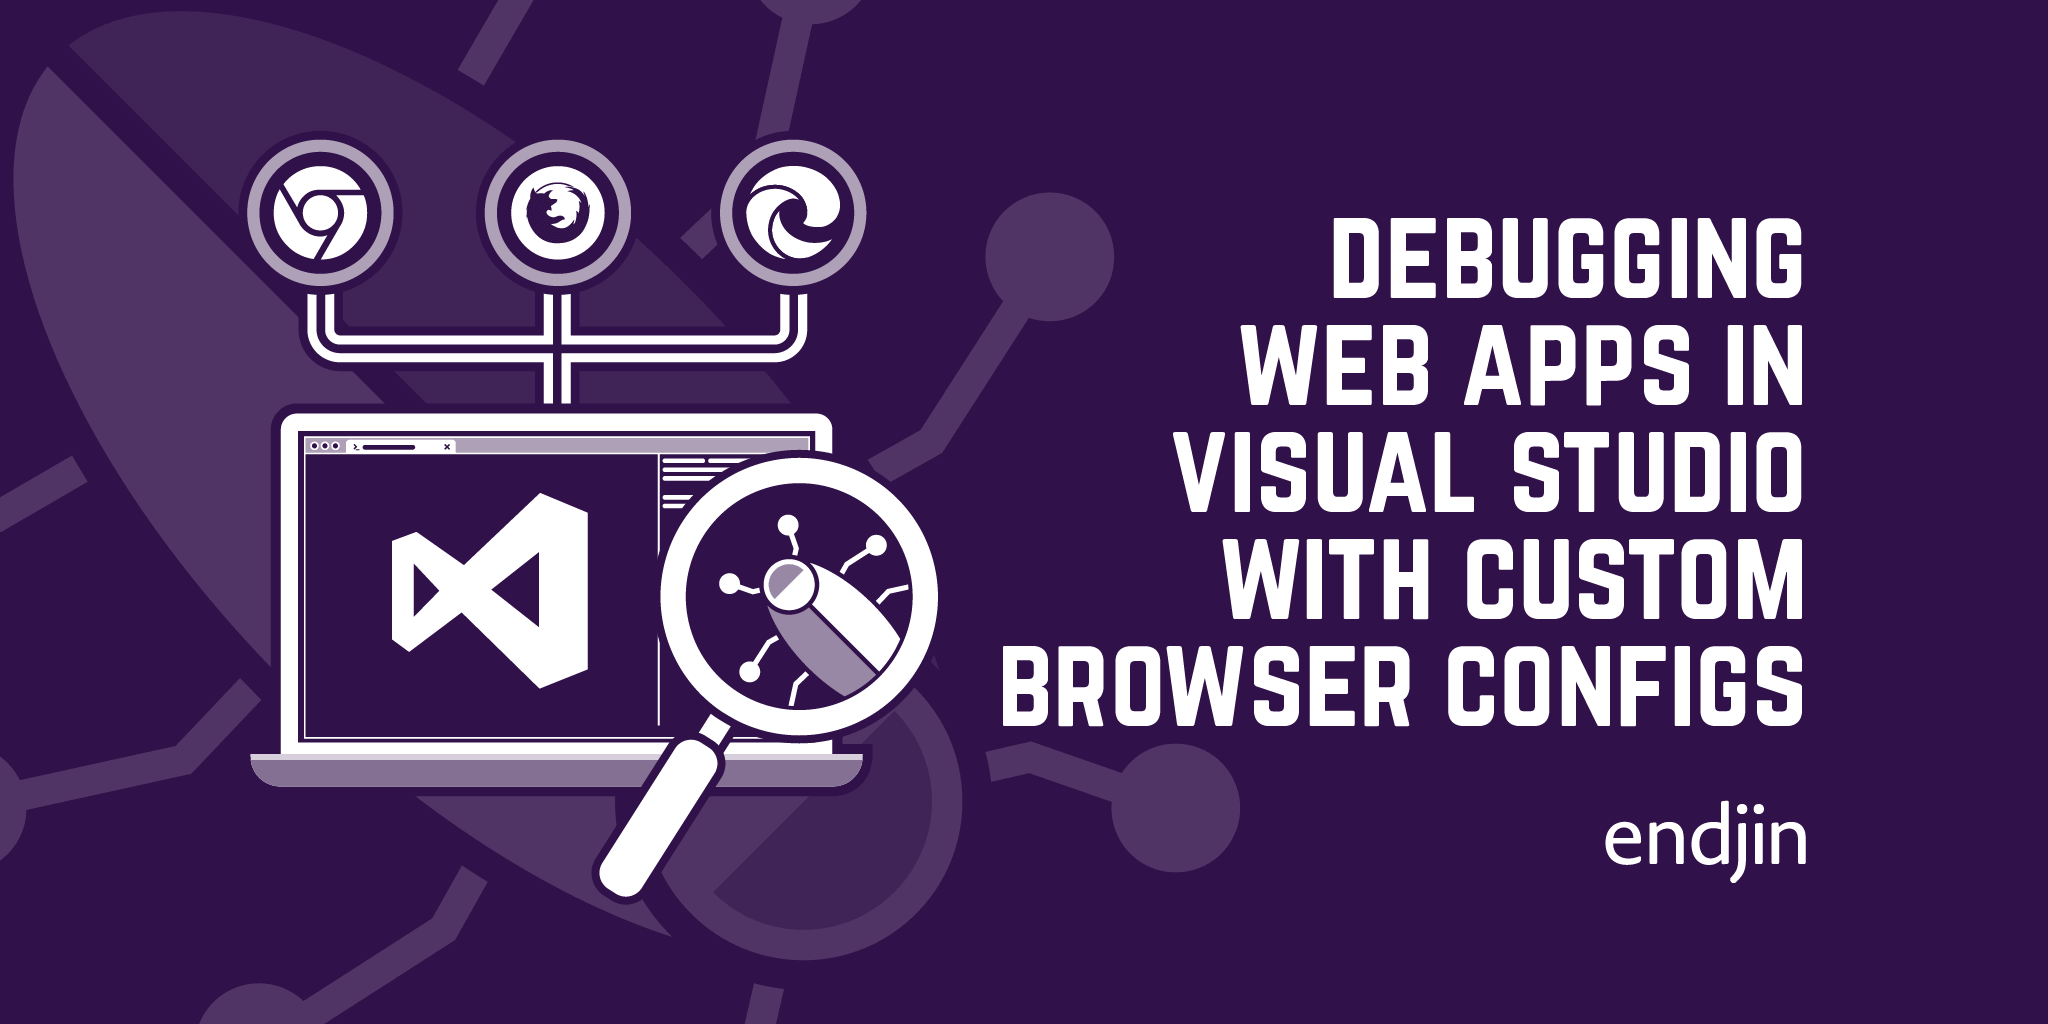 Debugging web apps in Visual Studio with custom browser configurations